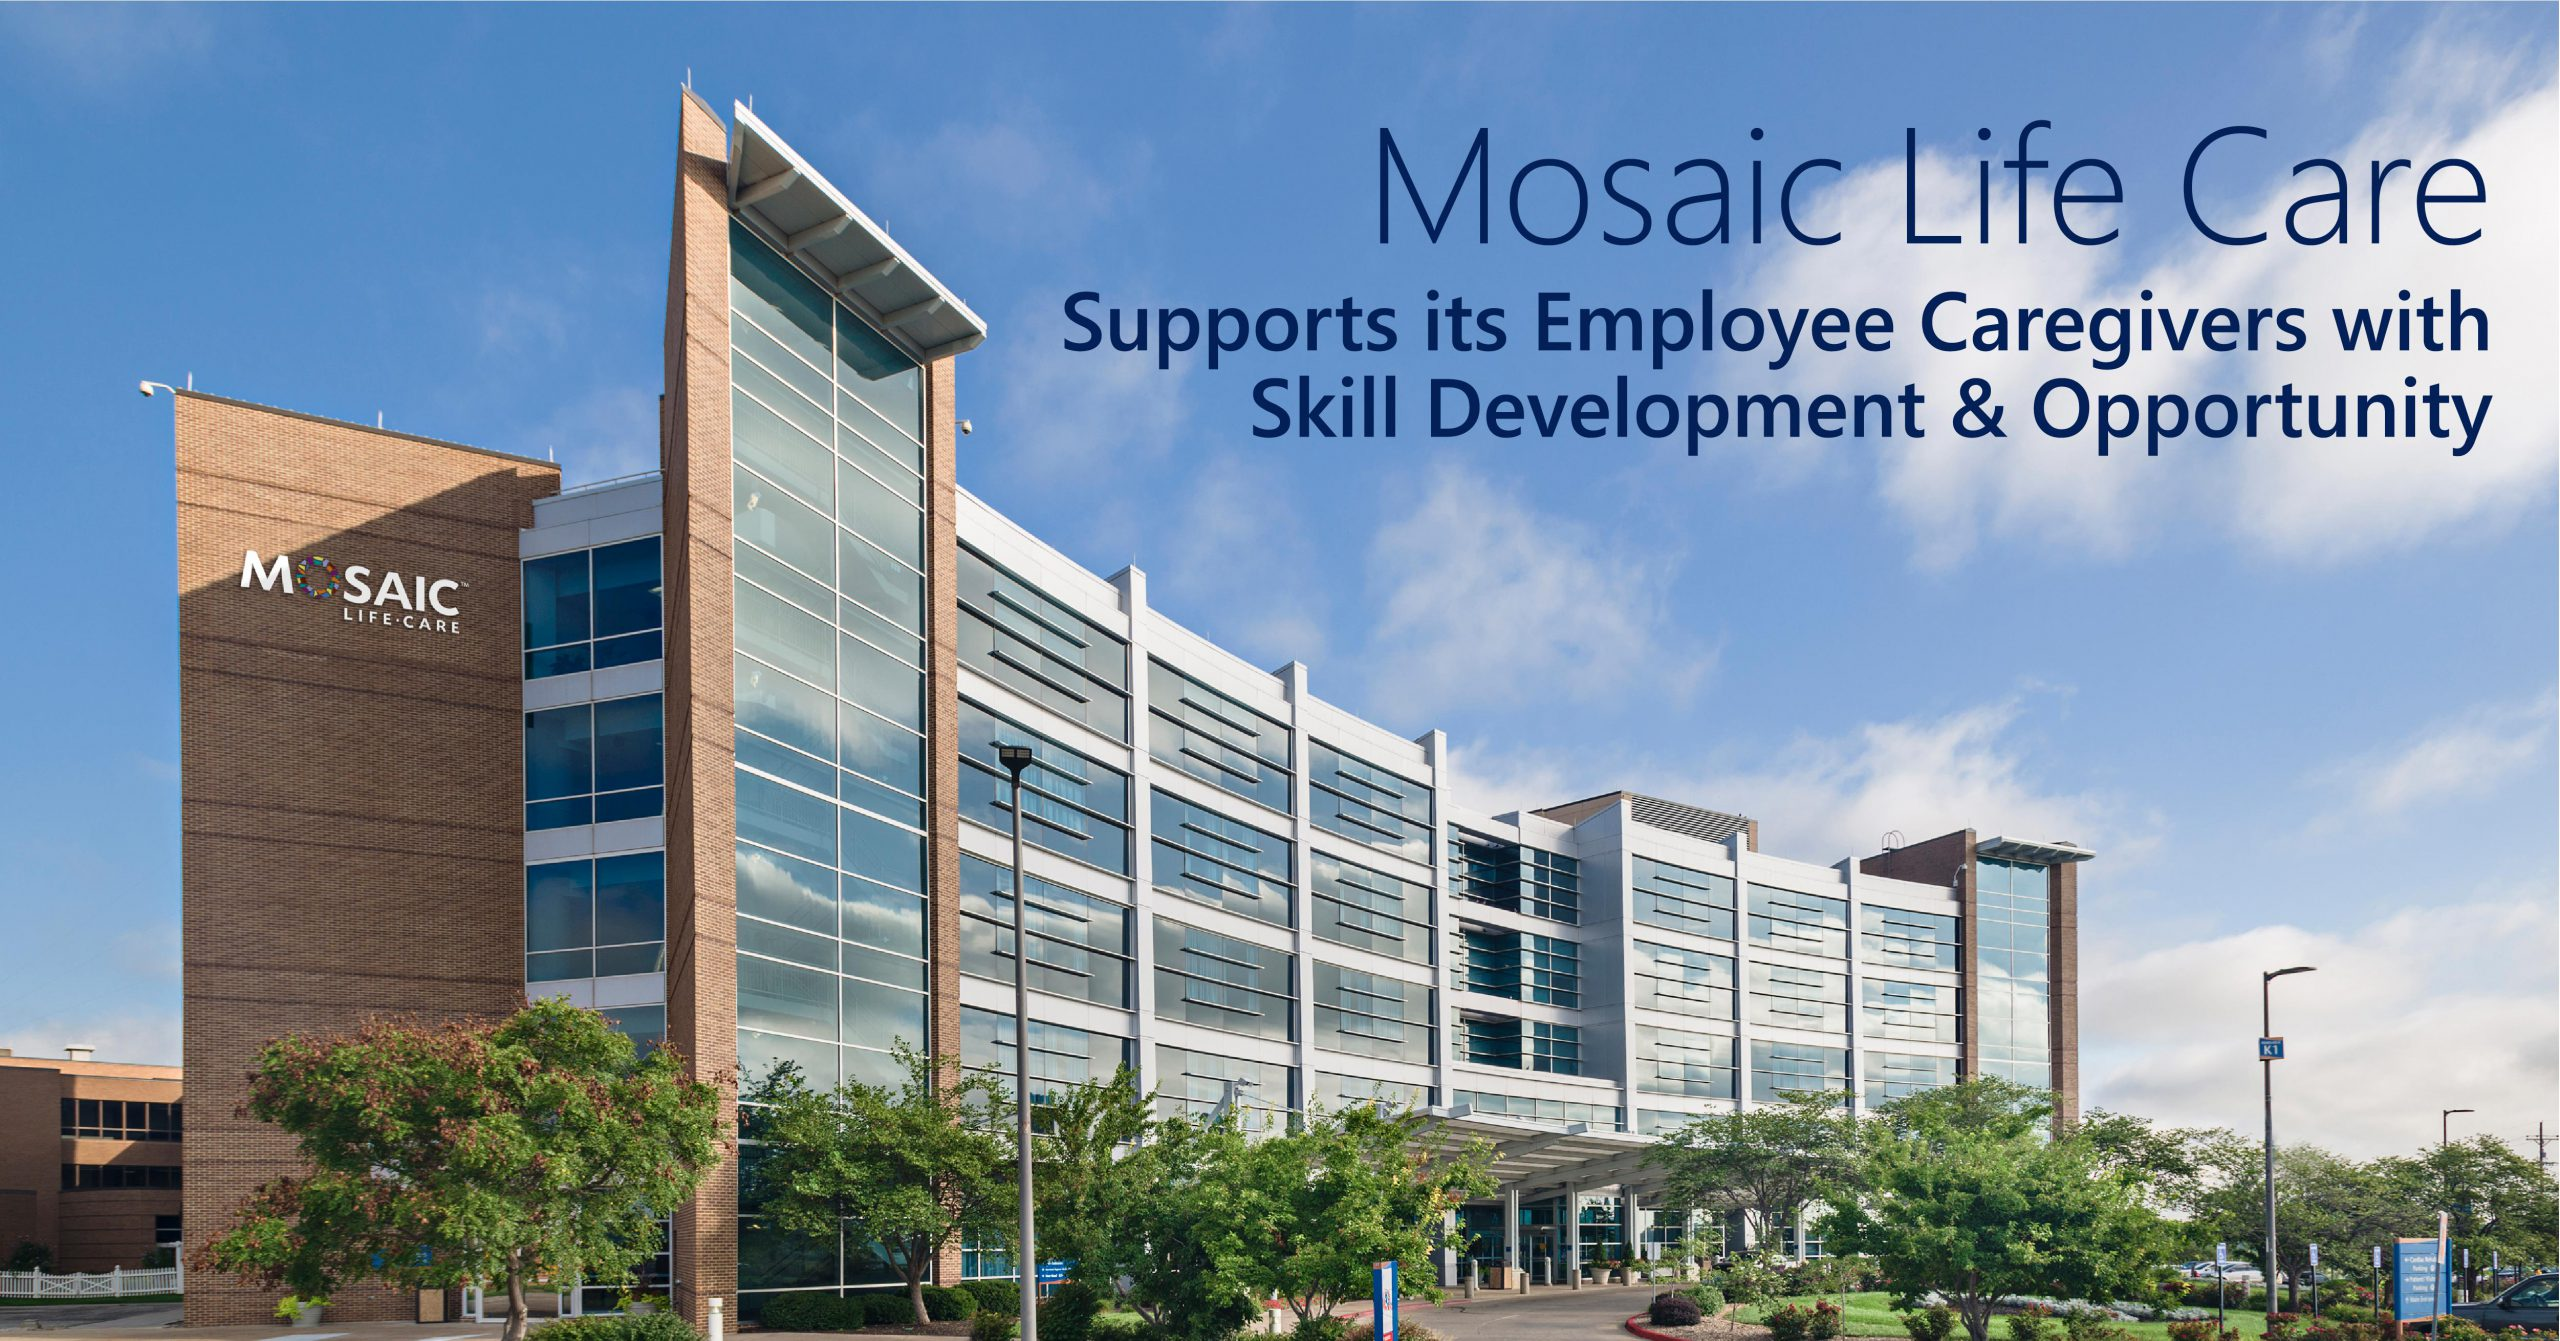 """The title of the article (Mosaic Life Care Supports its Employee Caregivers with Skill Development and Opportunity"""" is superimposed over a photo of the Mosaic Life Care hospital. The blue sky is seen overhead with a few wispy clouds. The hospital has many windows and the building has a curved shape."""